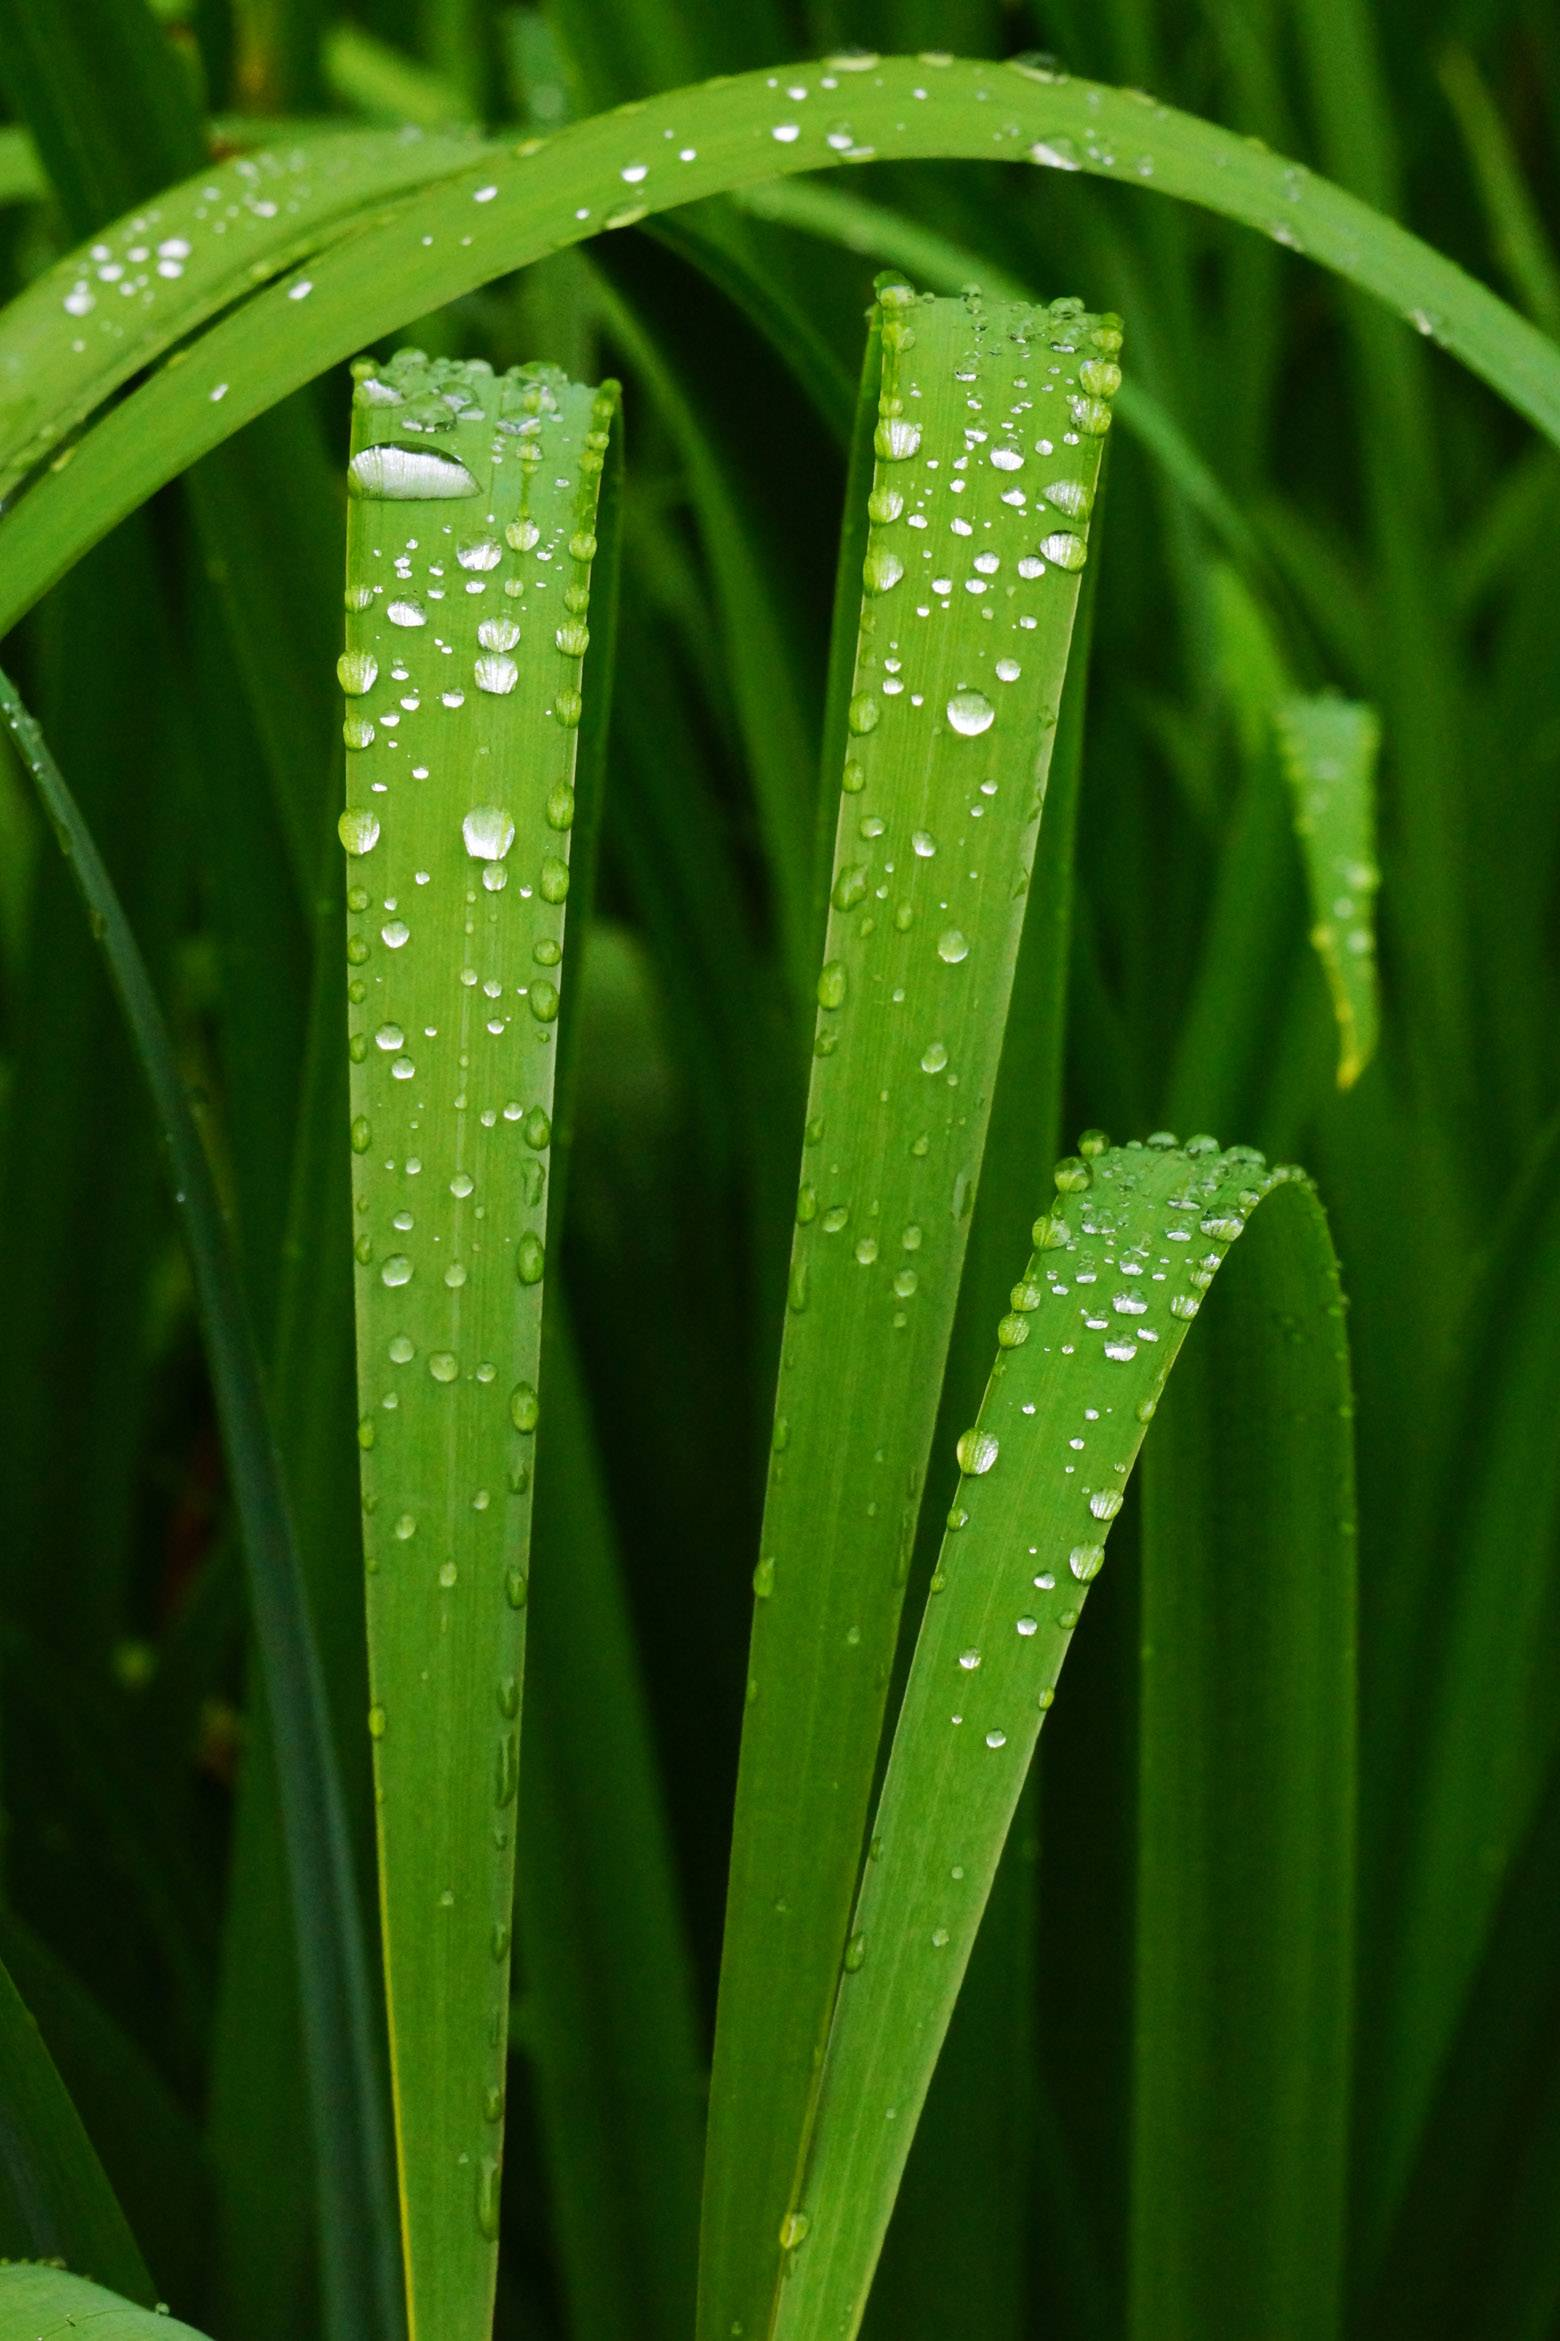 Last summer, I took a trip to Geneva's Fabyan Japanese Garden on a rainy day. I was attracted to all the bead-like drops clinging to these lush green stalks.